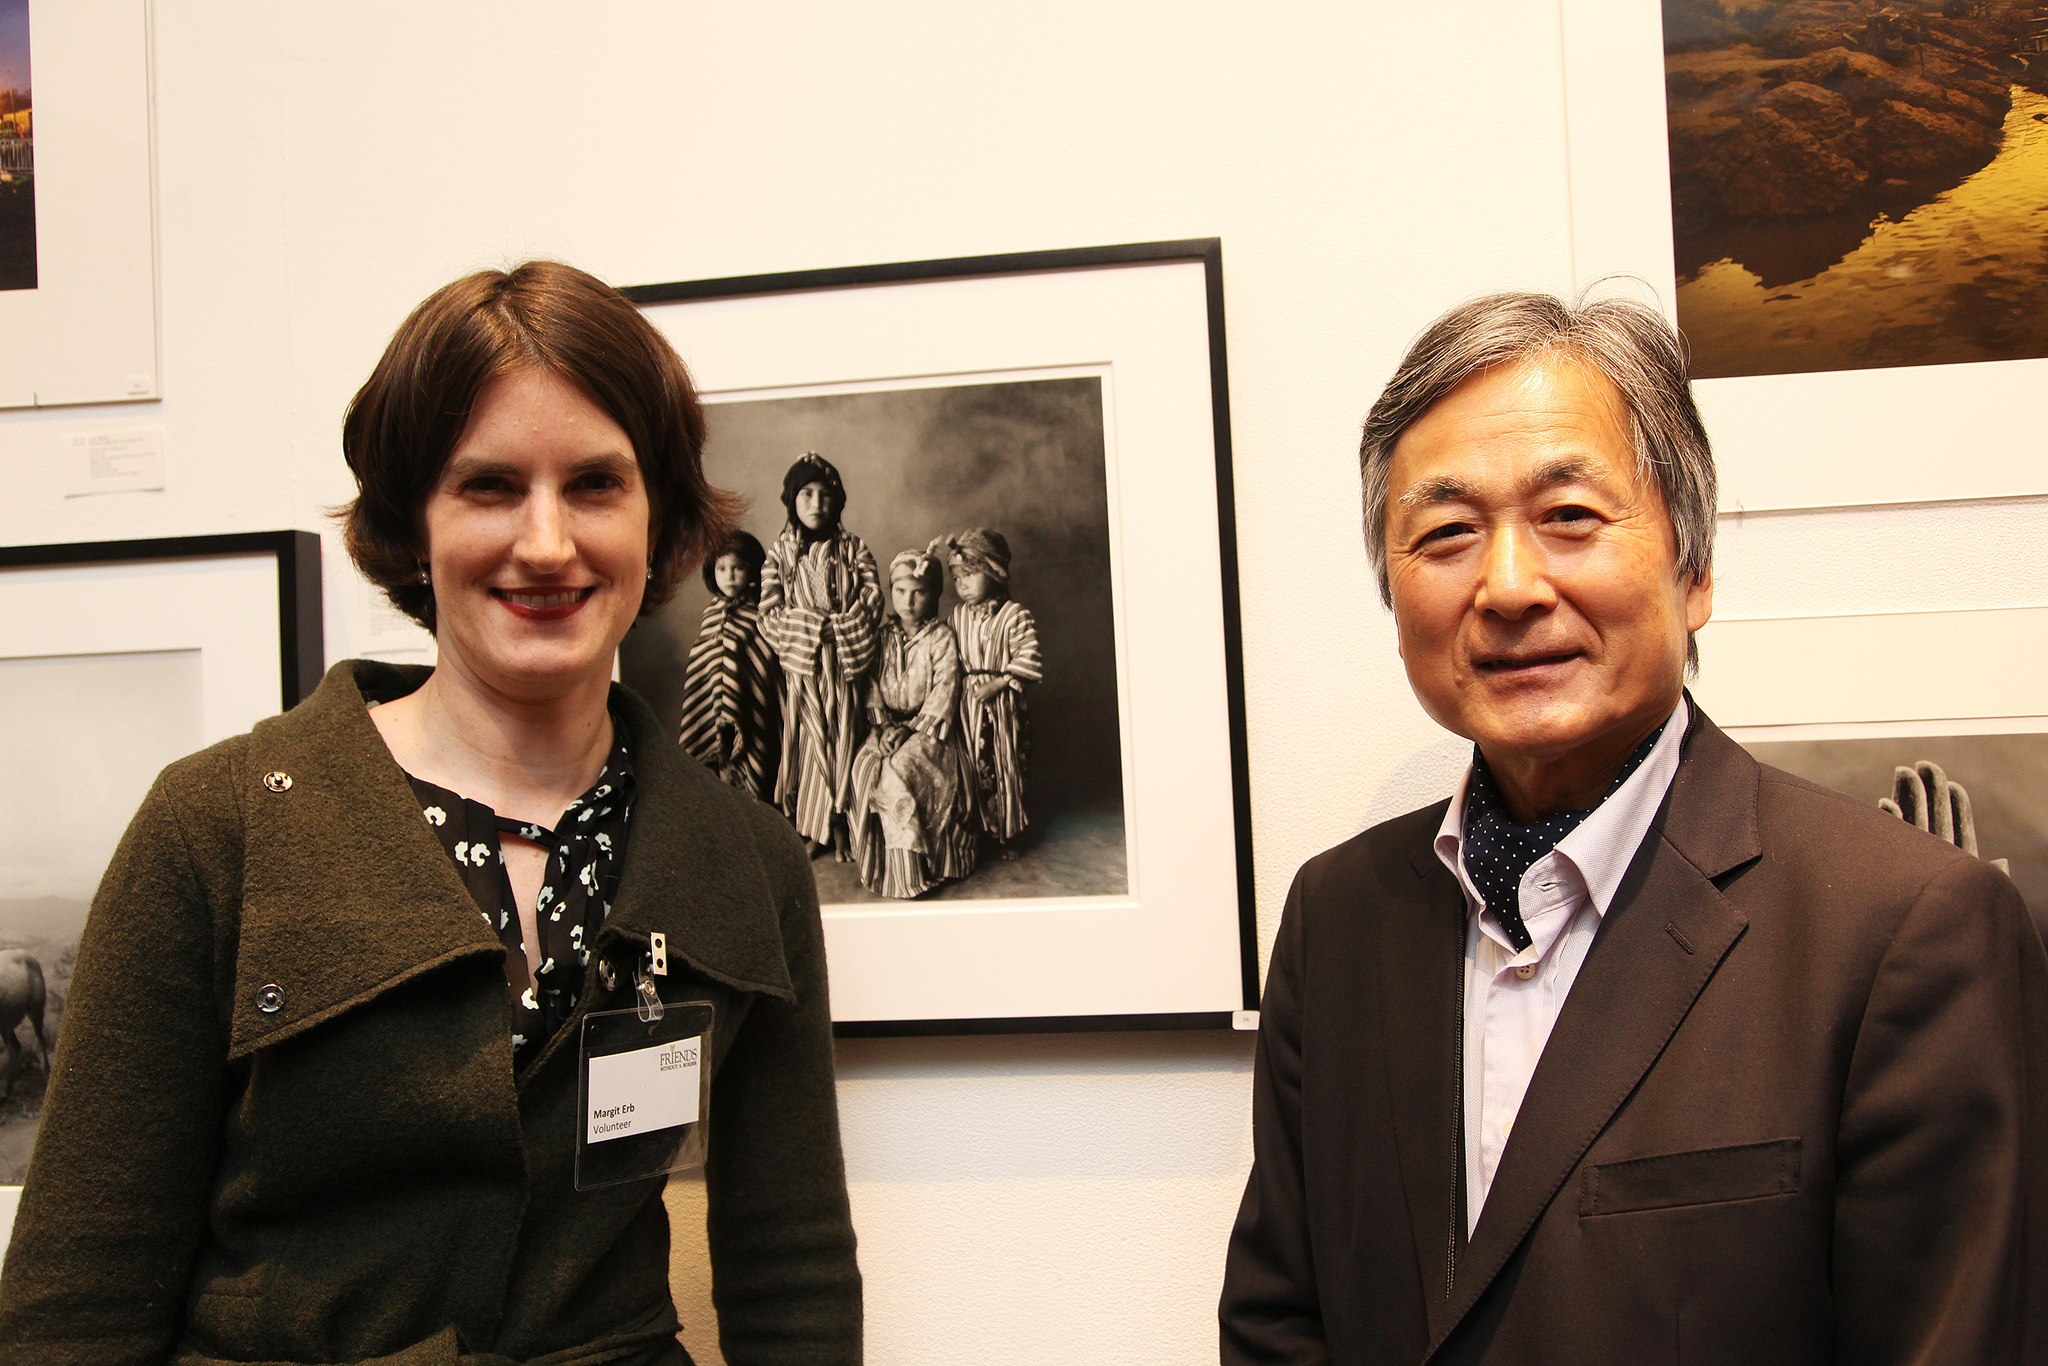 Founder of FWAB.org,  Kenro Izu  with volunteer Magarit Erb,   photographby  Irving Penn  in background.